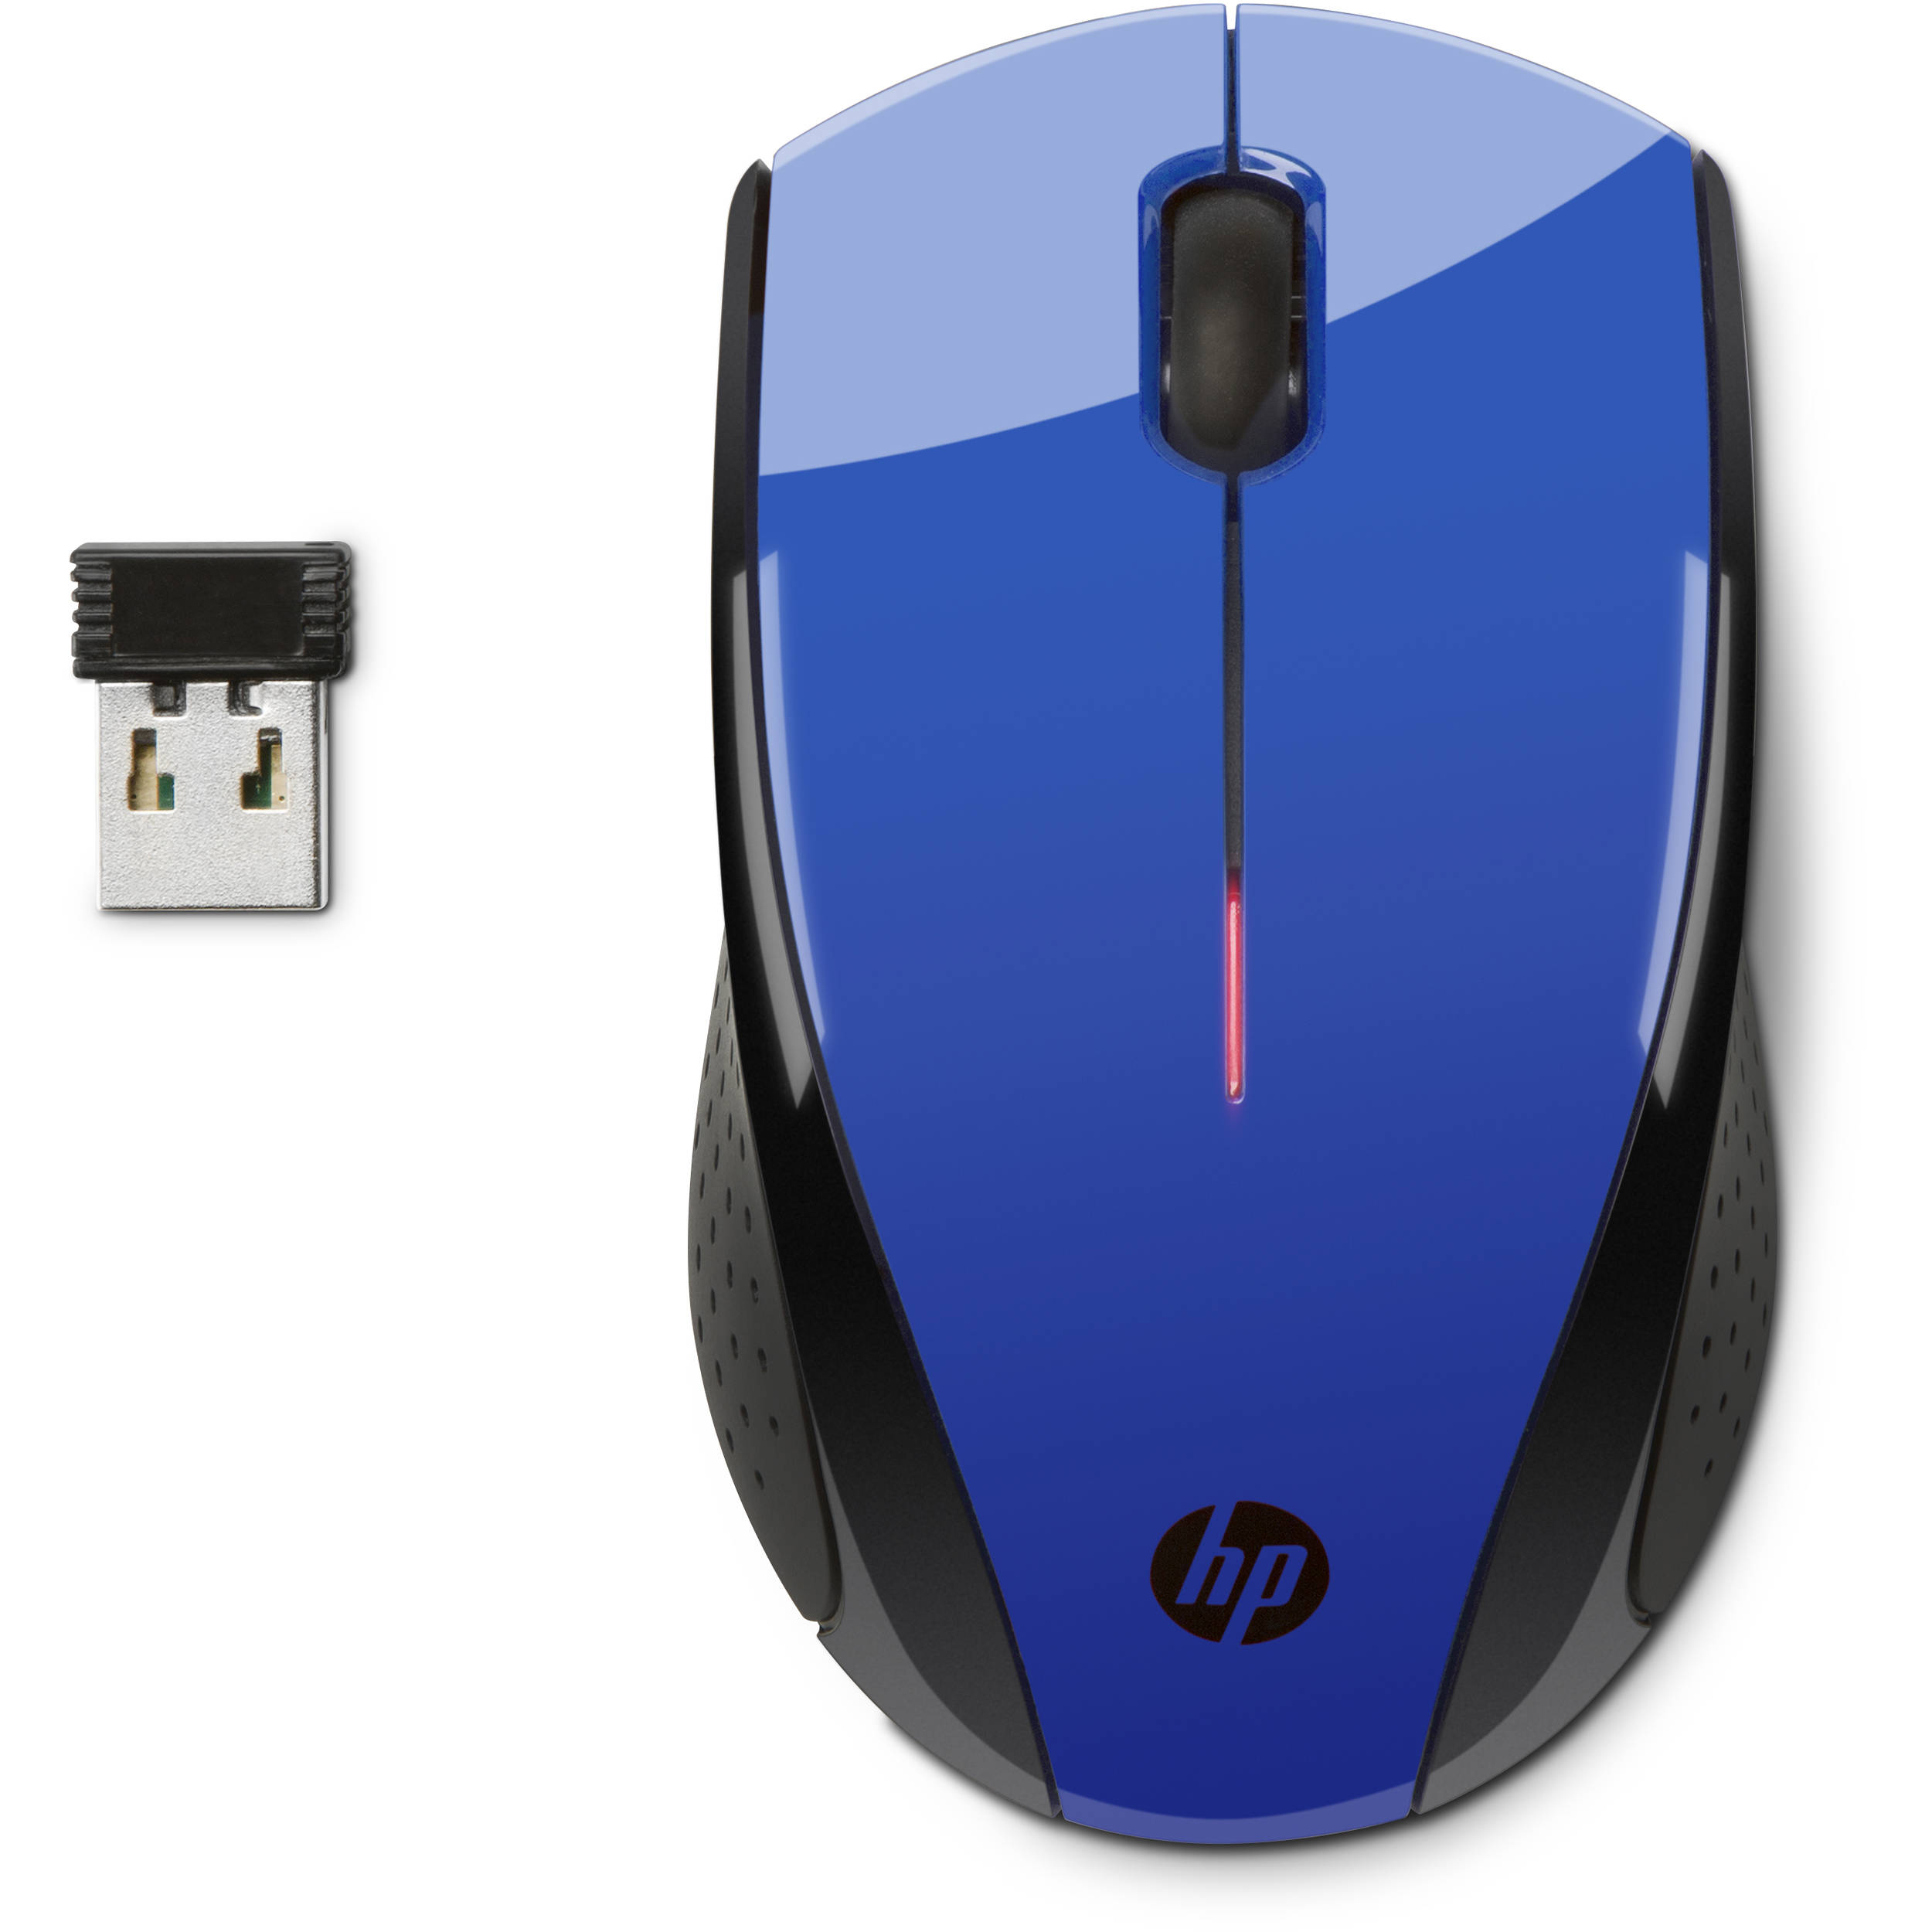 HP ANATEL WIRELESS MOUSE DRIVERS FOR WINDOWS 8